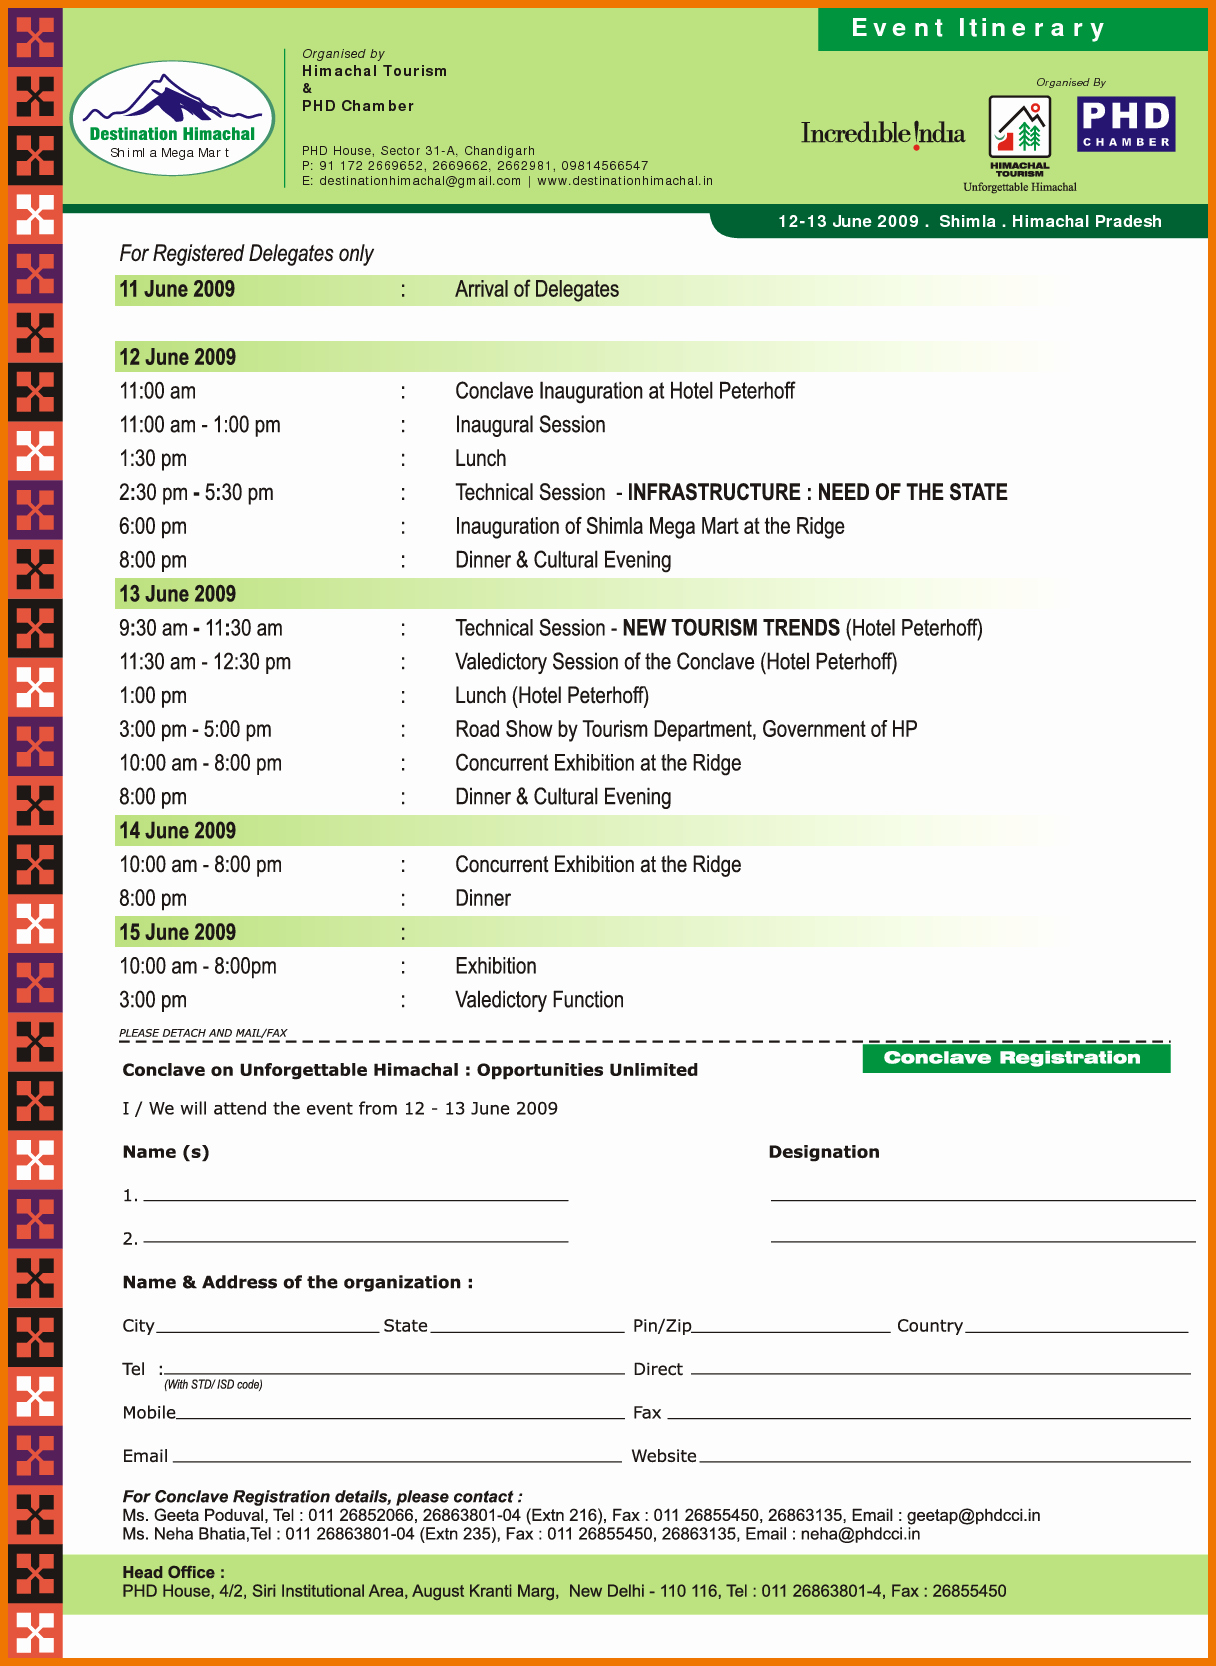 Event Itinerary Template Inspirational Itinerary Driverlayer Search Engine